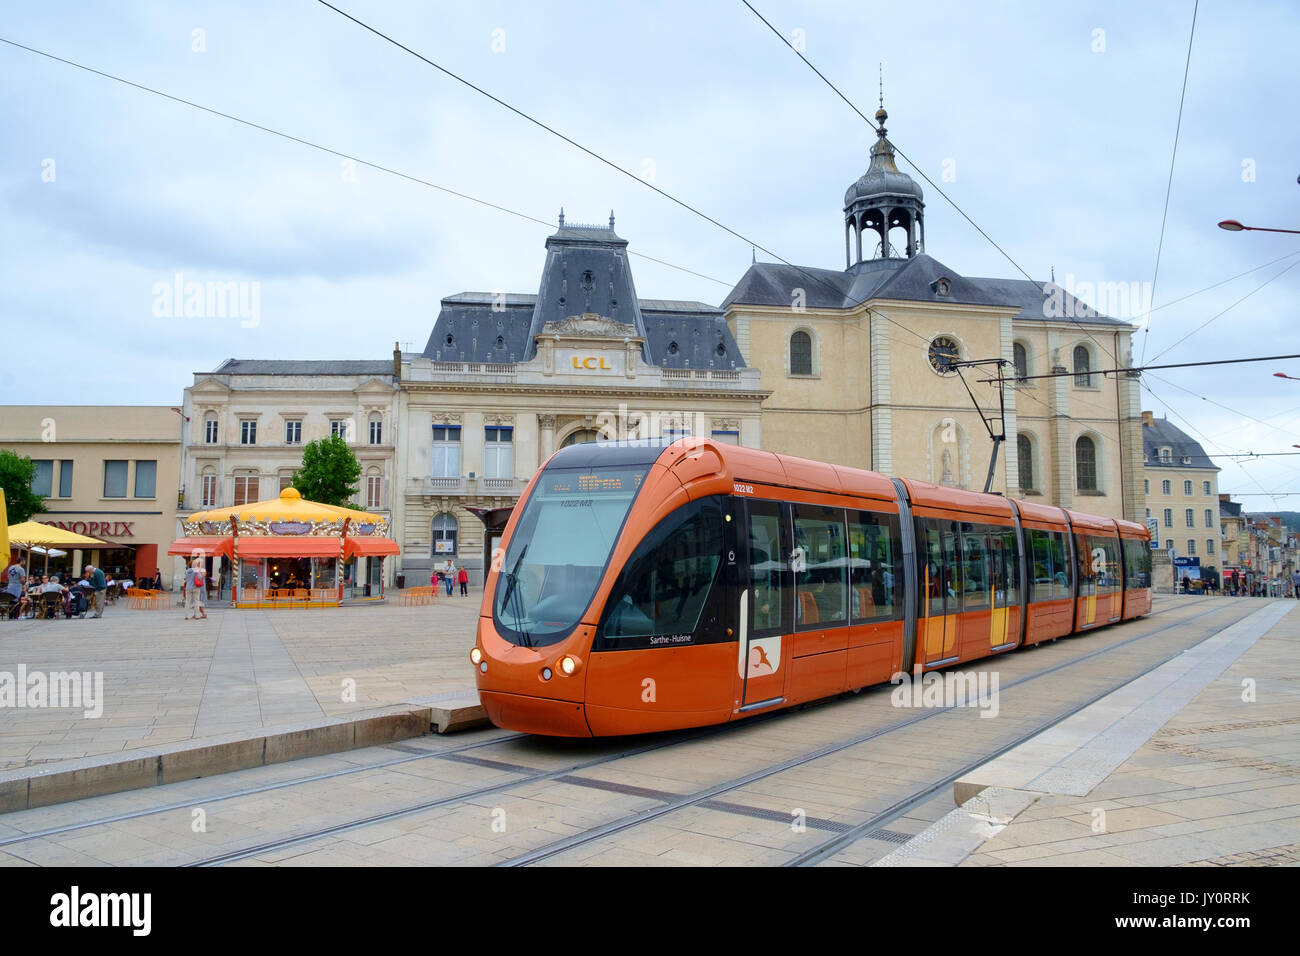 le mans, transport, france, tram, transportation, city, public, street, rail, modern, french, tramway, town, road, Stock Photo